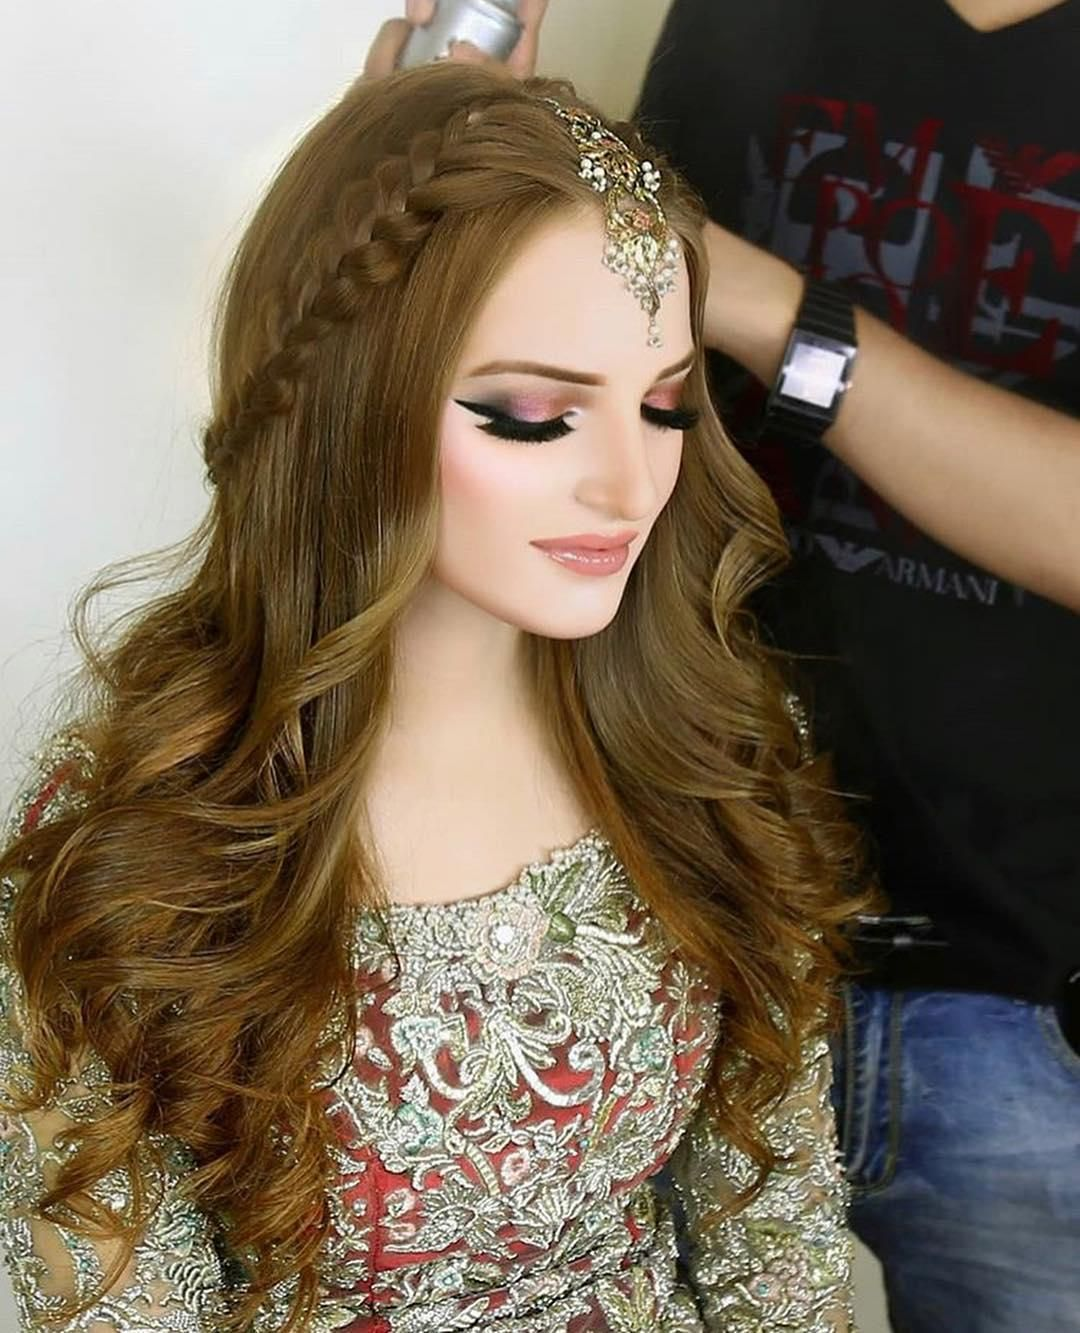 82 Lovely Hair Color Trends For Women The Right Hair Color For Your Skin Tone In 2020 Pakistani Bridal Hairstyles Open Hairstyles Indian Hairstyles